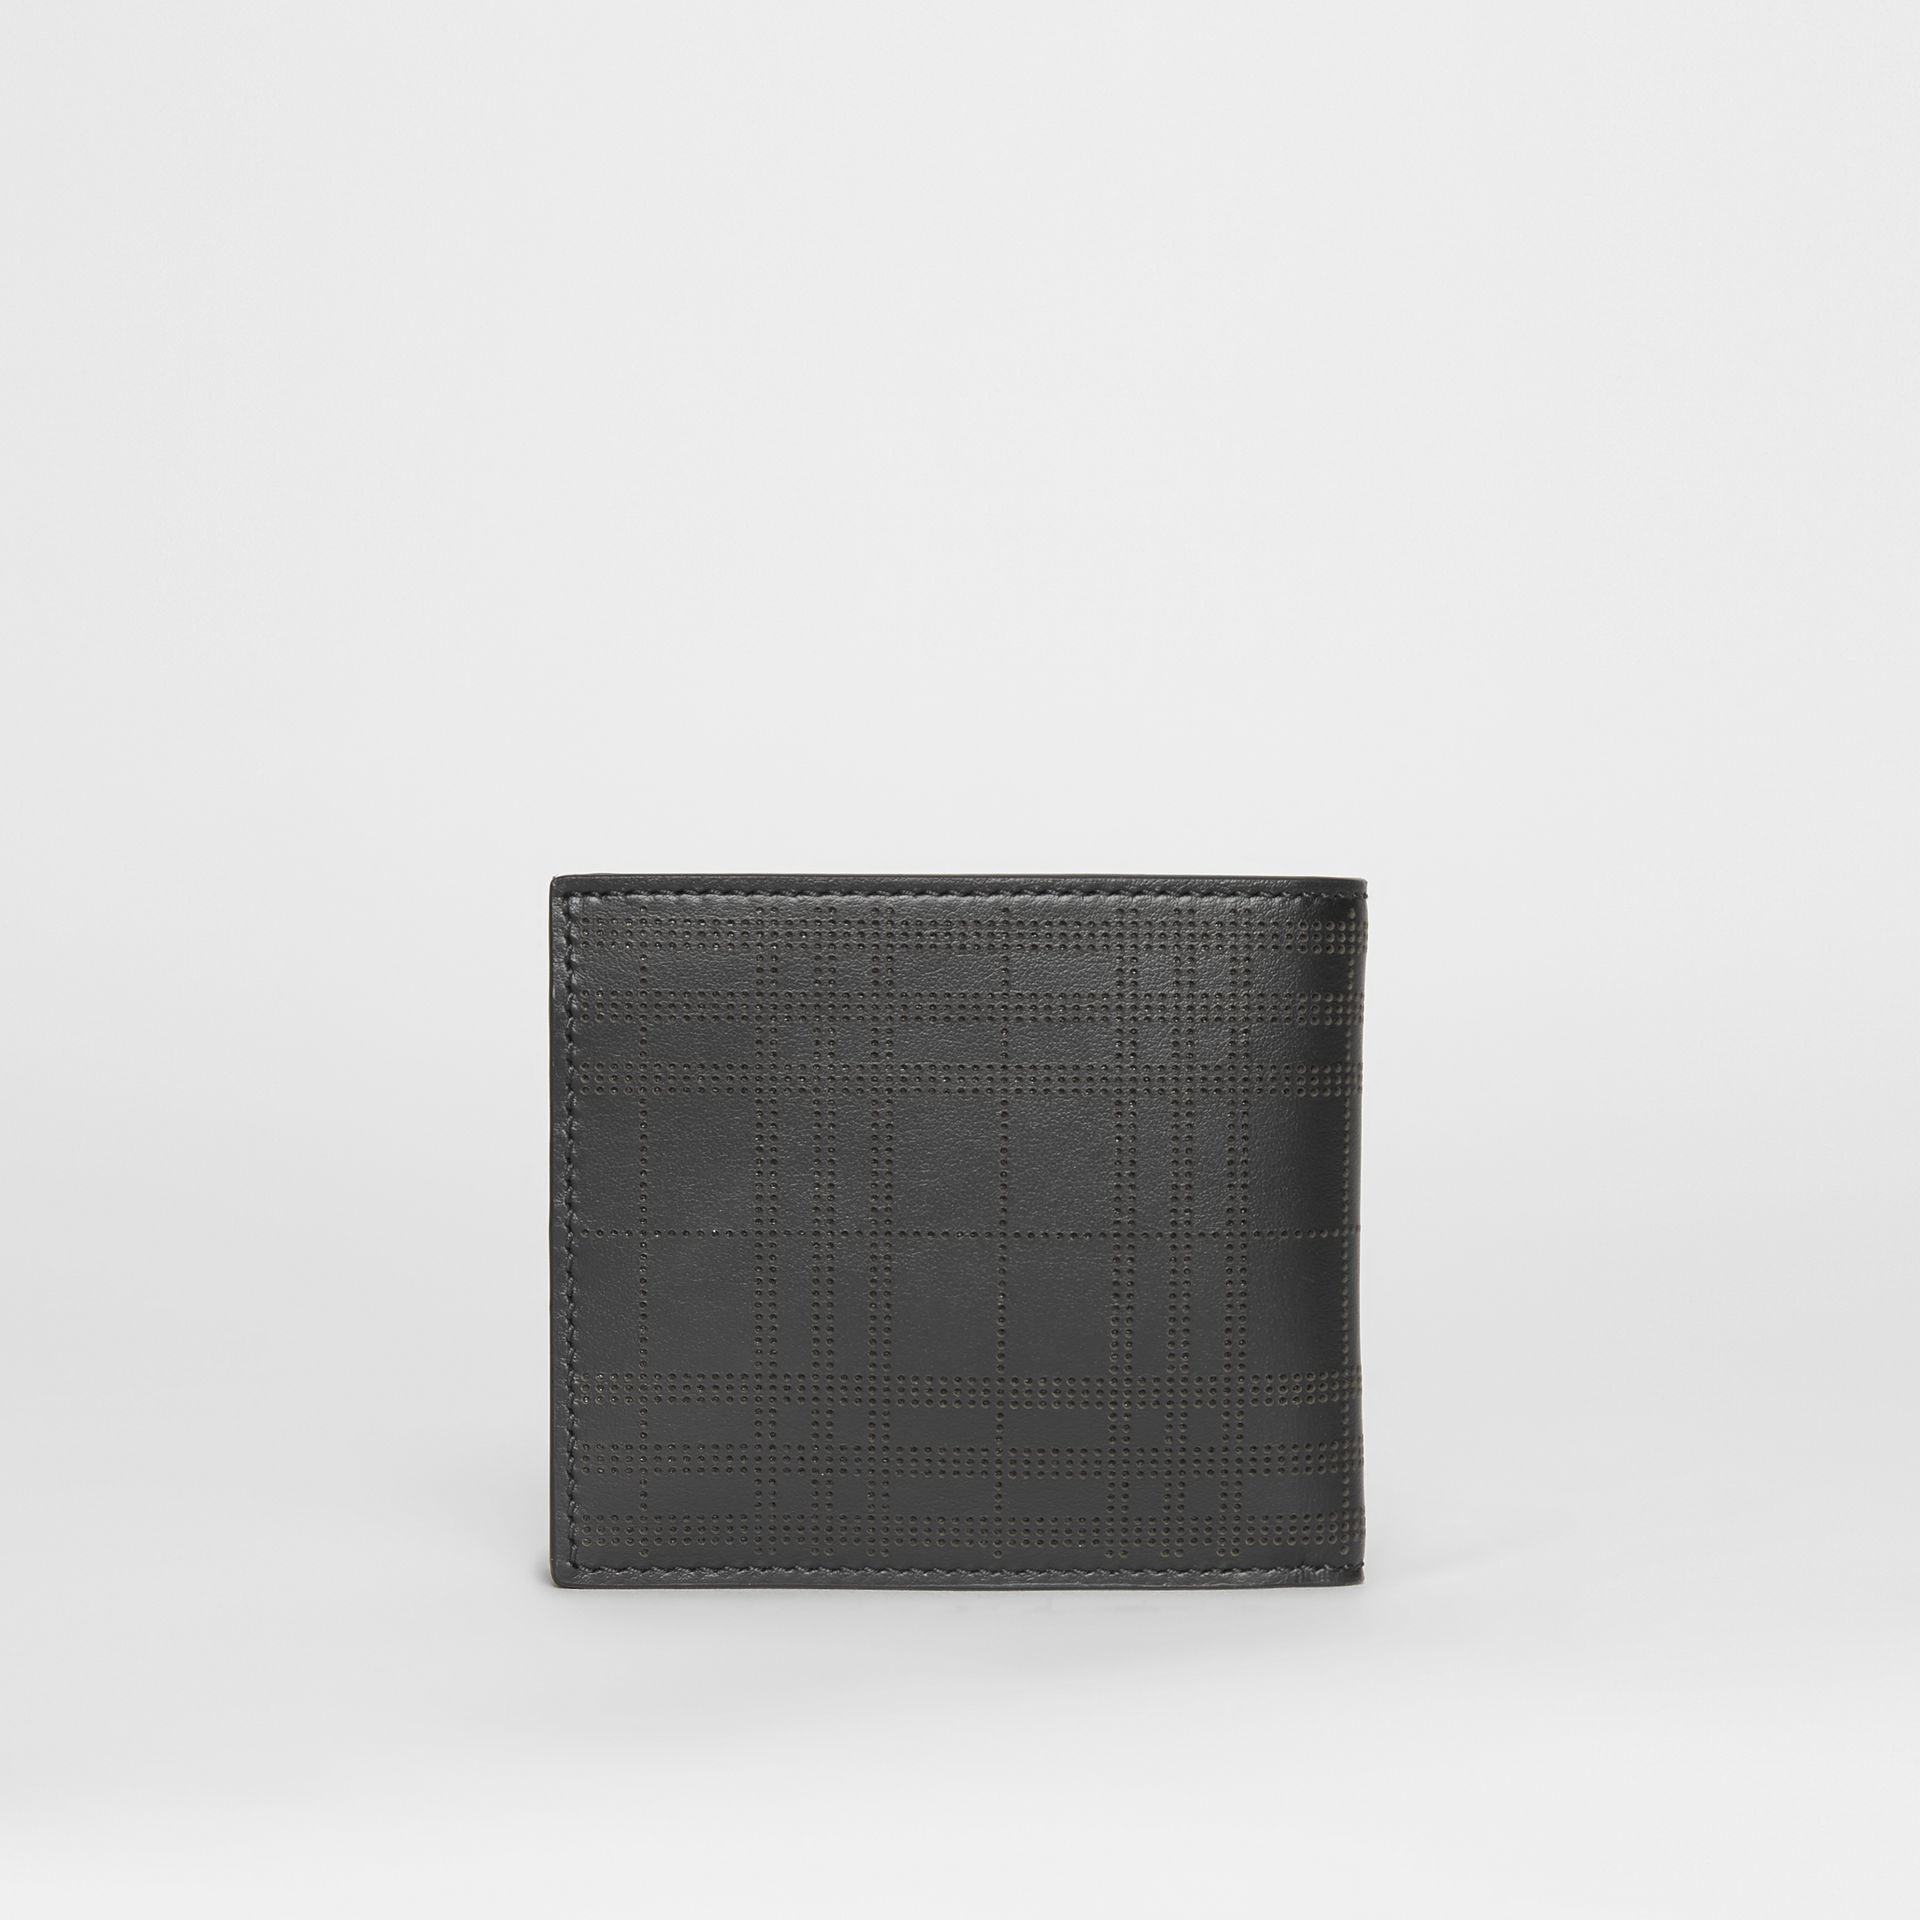 Perforated Check Leather International Bifold Wallet in Black - Men | Burberry - gallery image 4